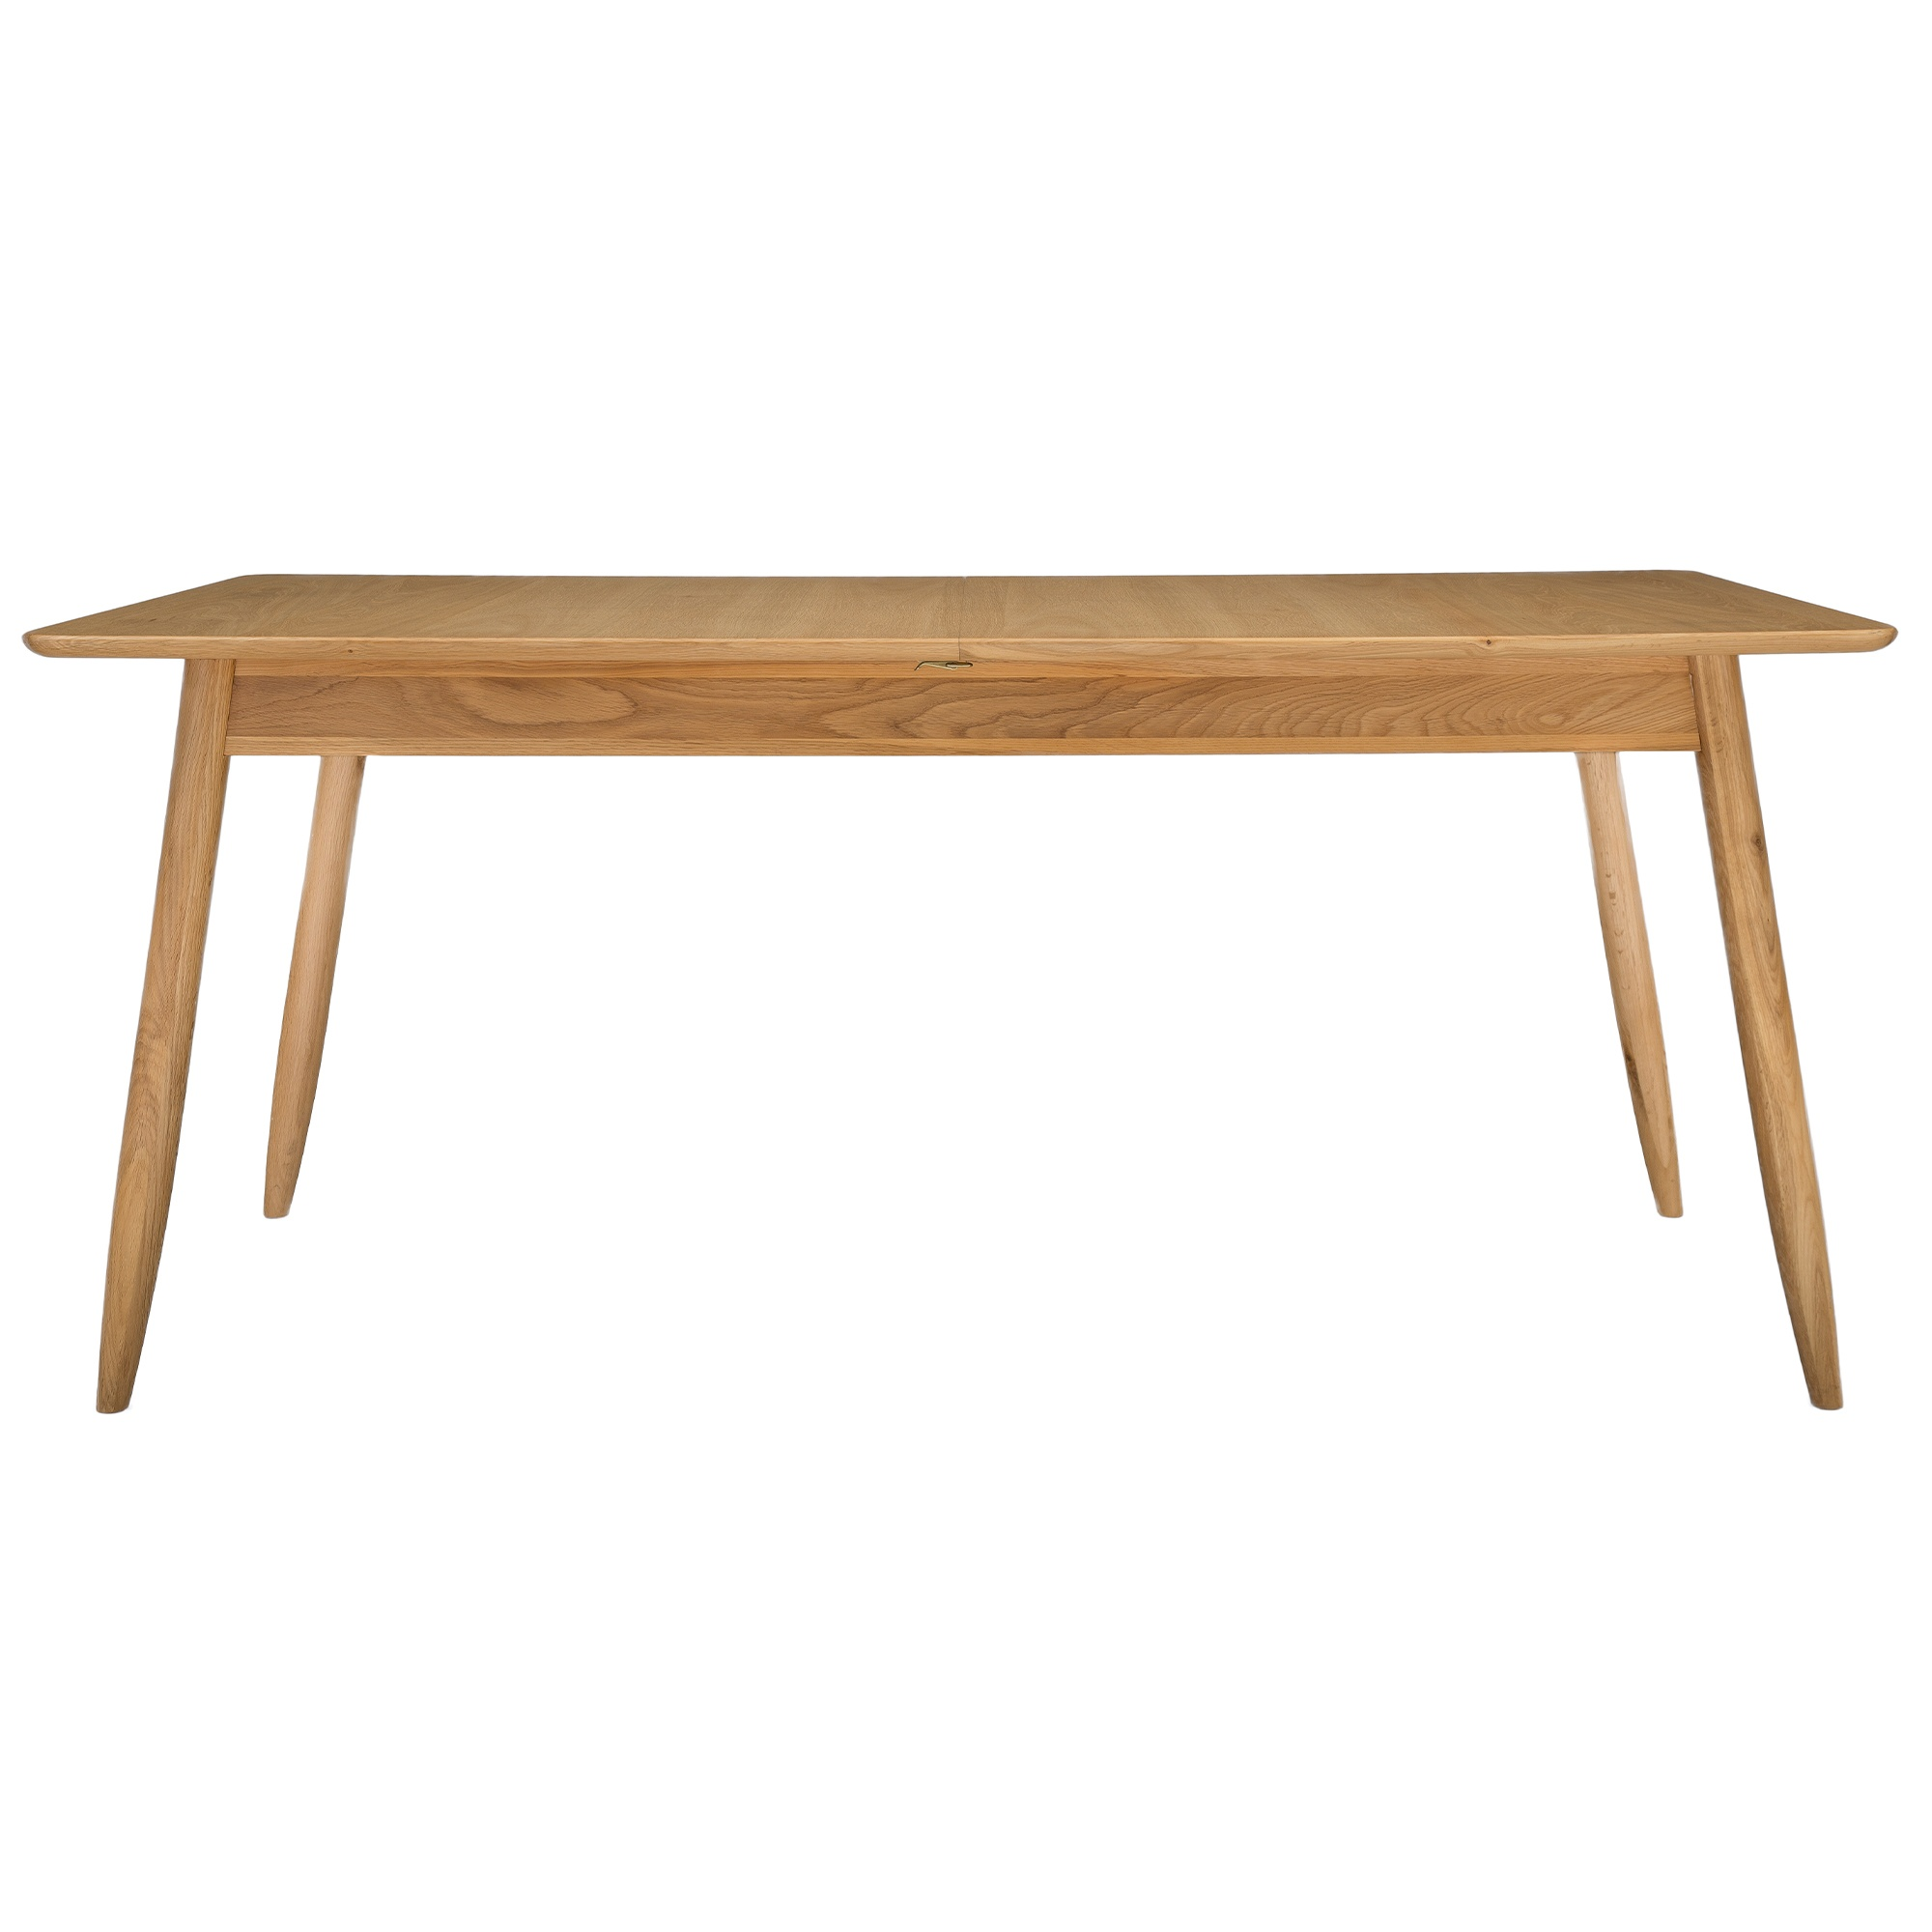 Ercol Teramo Medium Extending Dining Table Ercol  : 3619 from www.cookesfurniture.co.uk size 2000 x 2000 jpeg 175kB